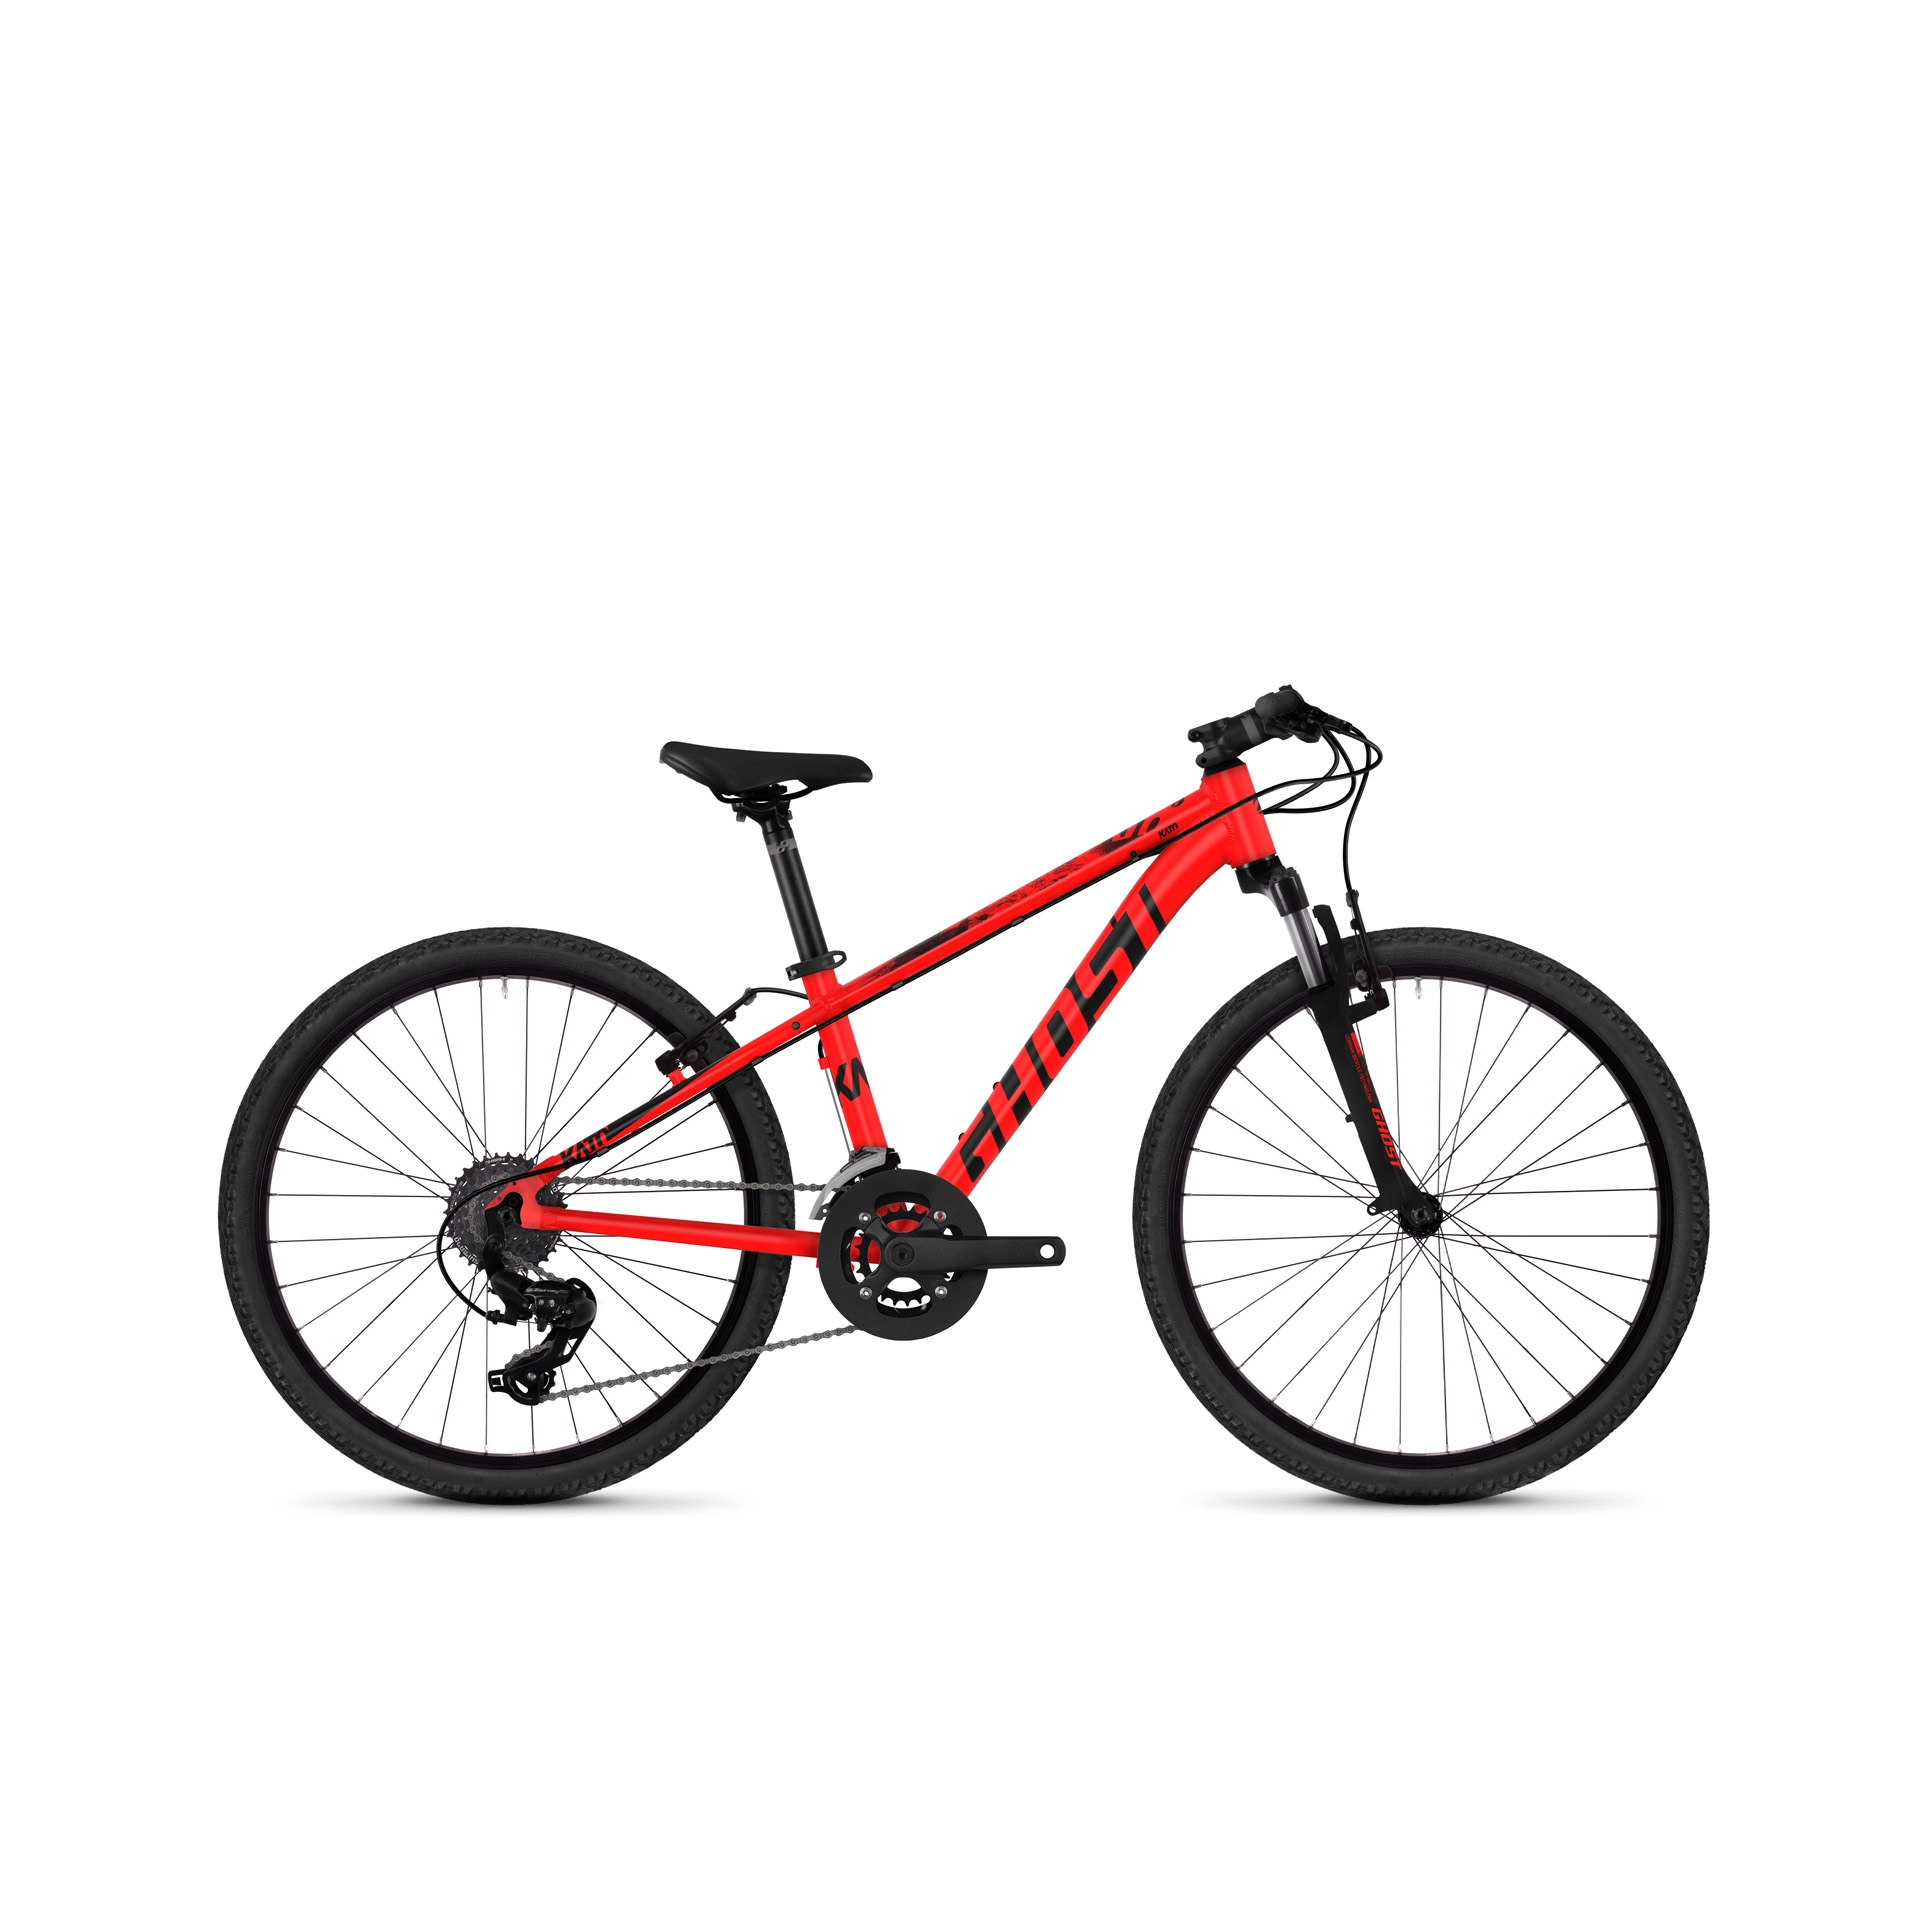 VTT semi-rigide Ghost Kato Kid 2.4 24 Rouge